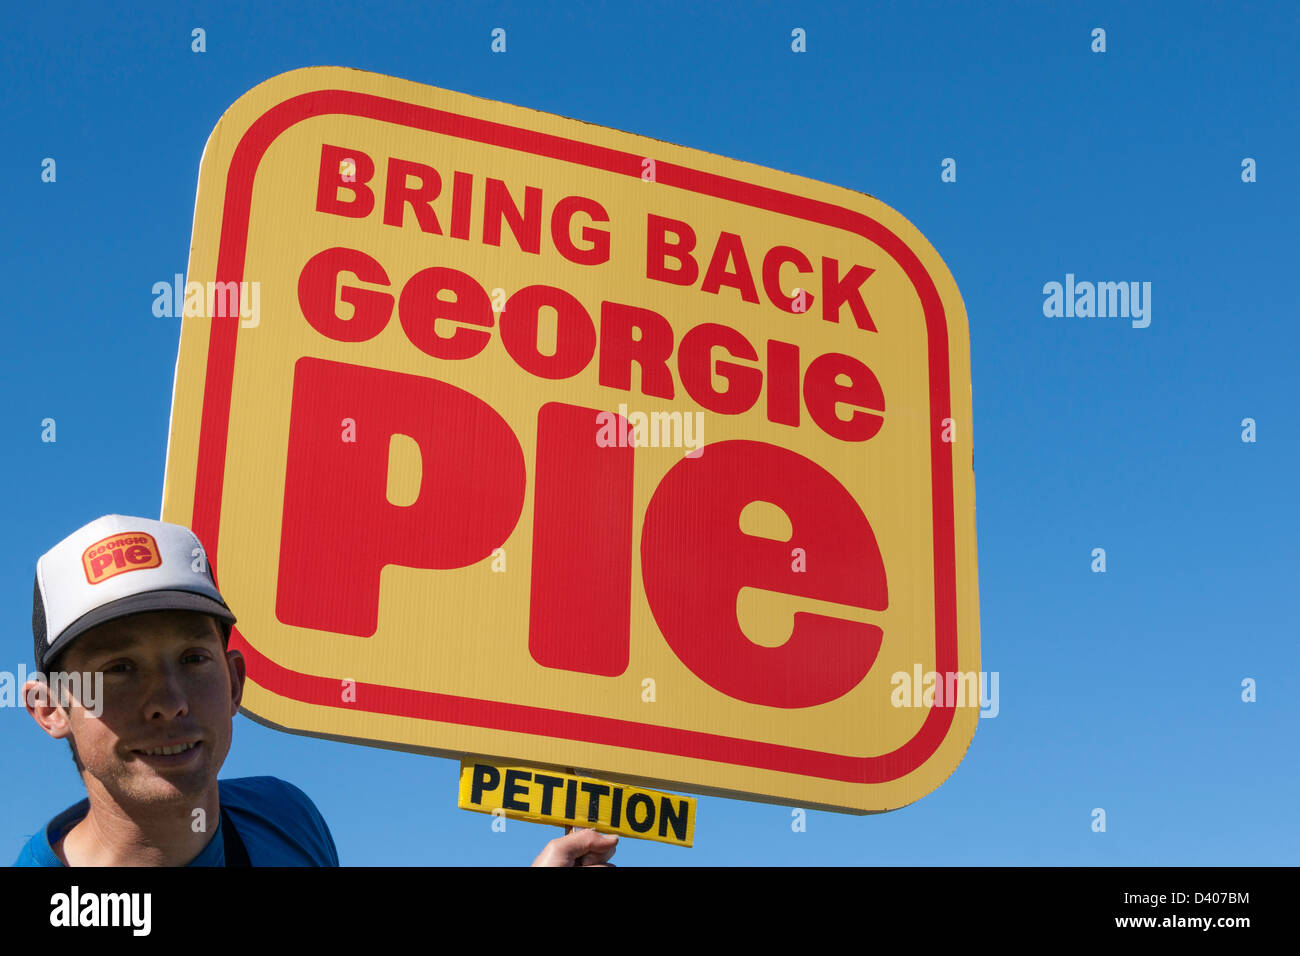 Campaigning, young man seeking signatures for a petition. - Stock Image